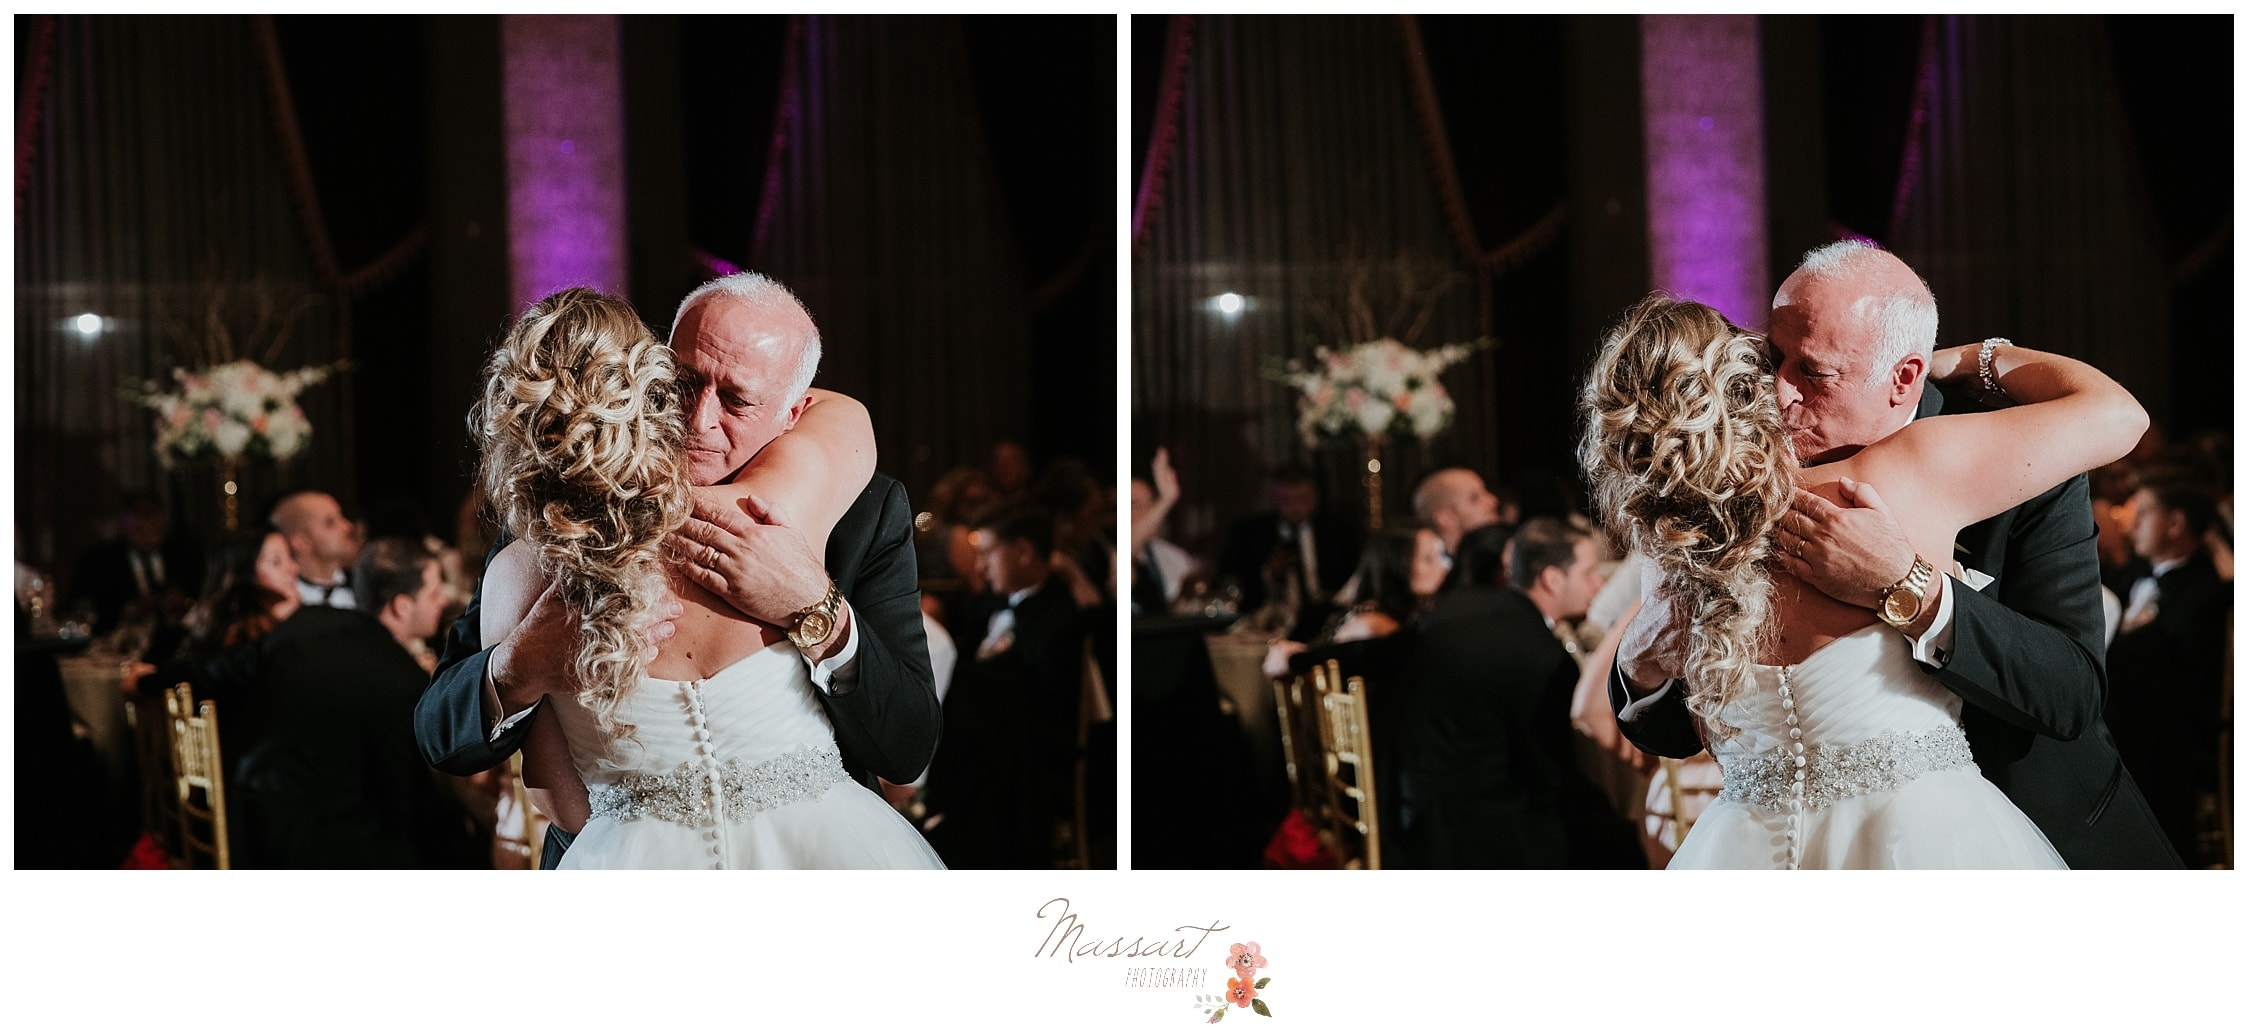 Father and daughter dance during Biltmore wedding reception photographed by Massart Photography RI